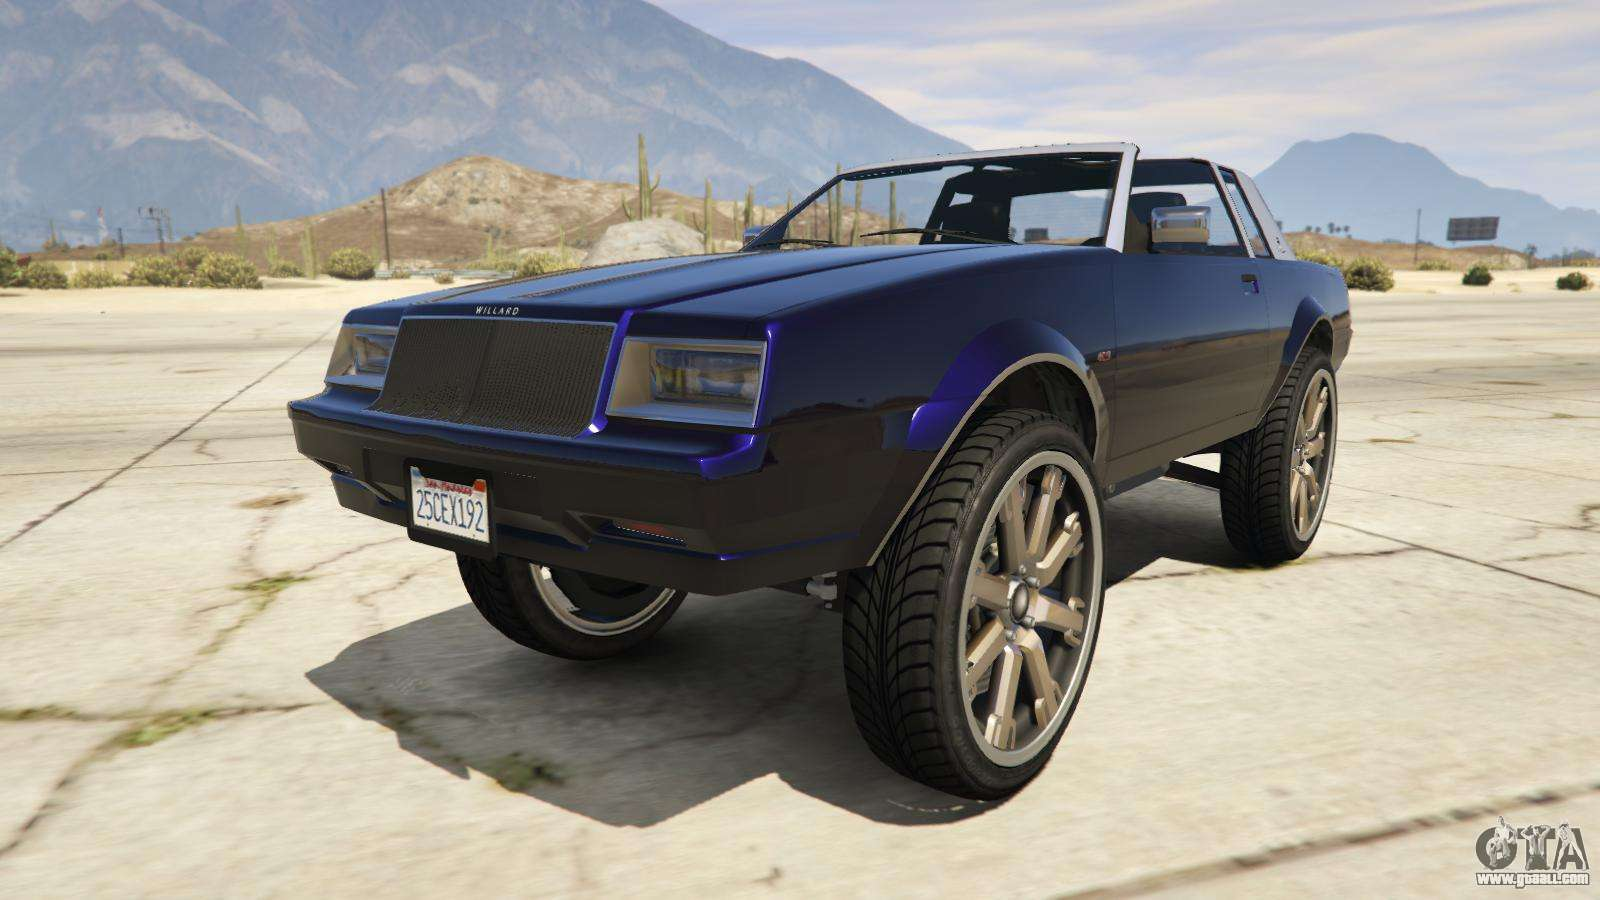 Willard Faction Donk From Gta 5 Online Screenshots